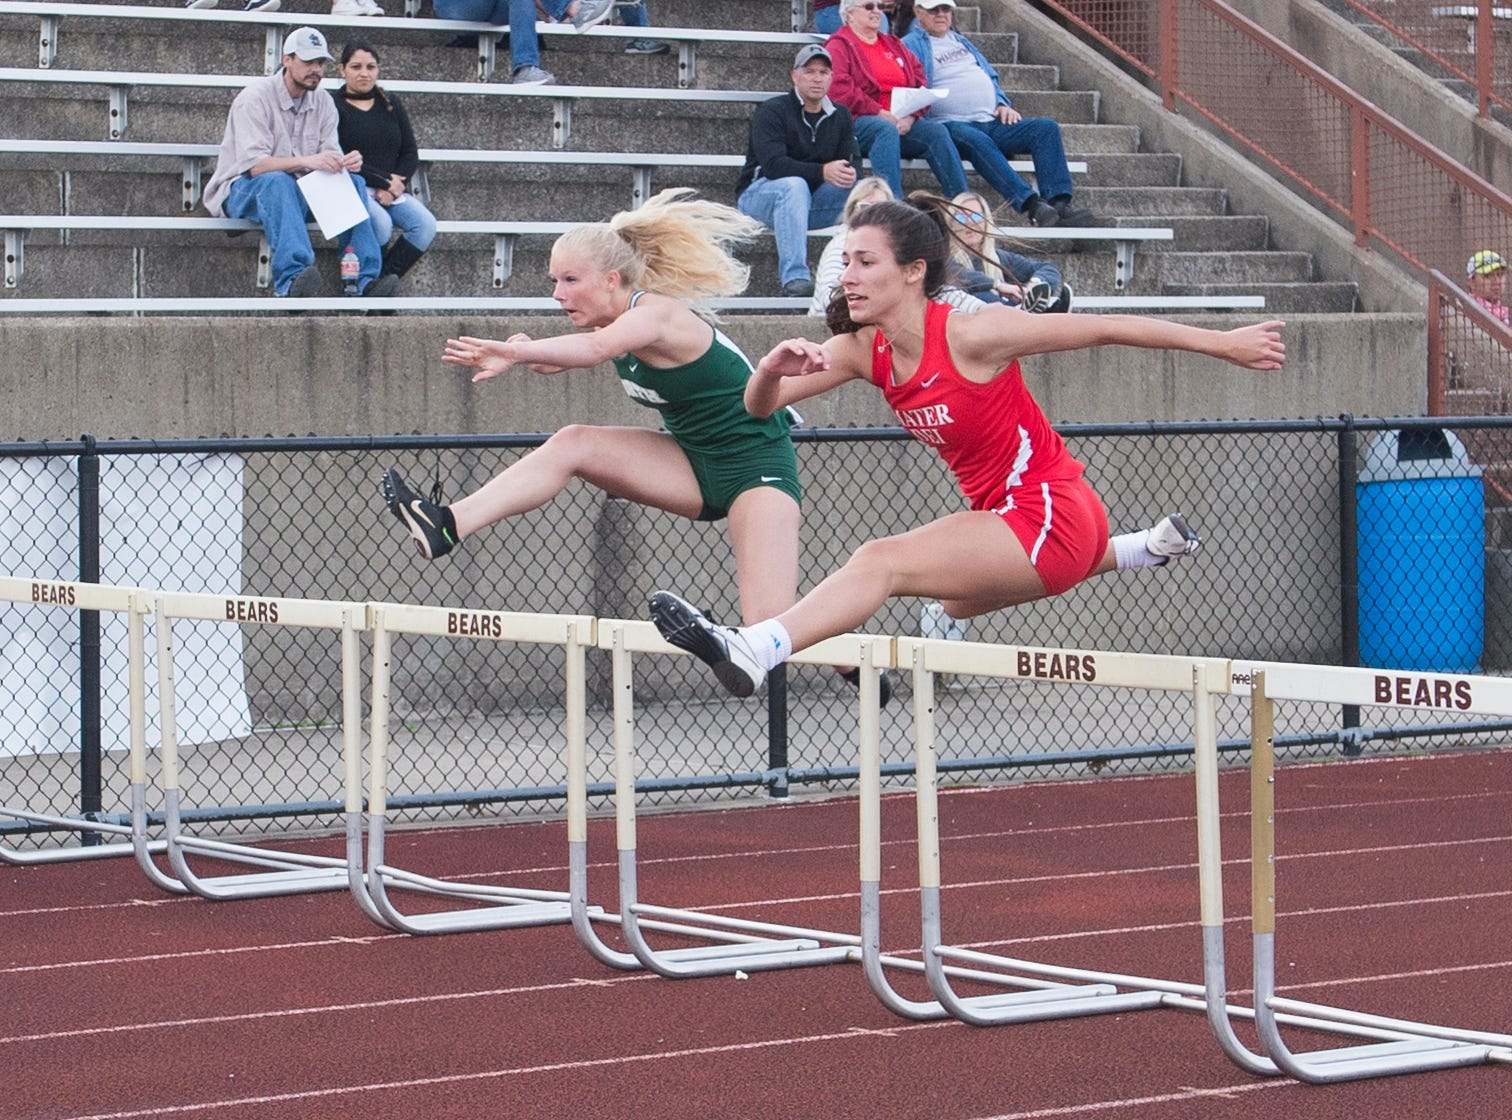 Mater Dei's Victoria Zigenfus (red) clears a hurdle in the girls 100m low hurdle event during the 2019 City Track and Field meet at Central High School Friday, April 12, 2019. Zingenfus won first place in the event at 16.41 seconds.